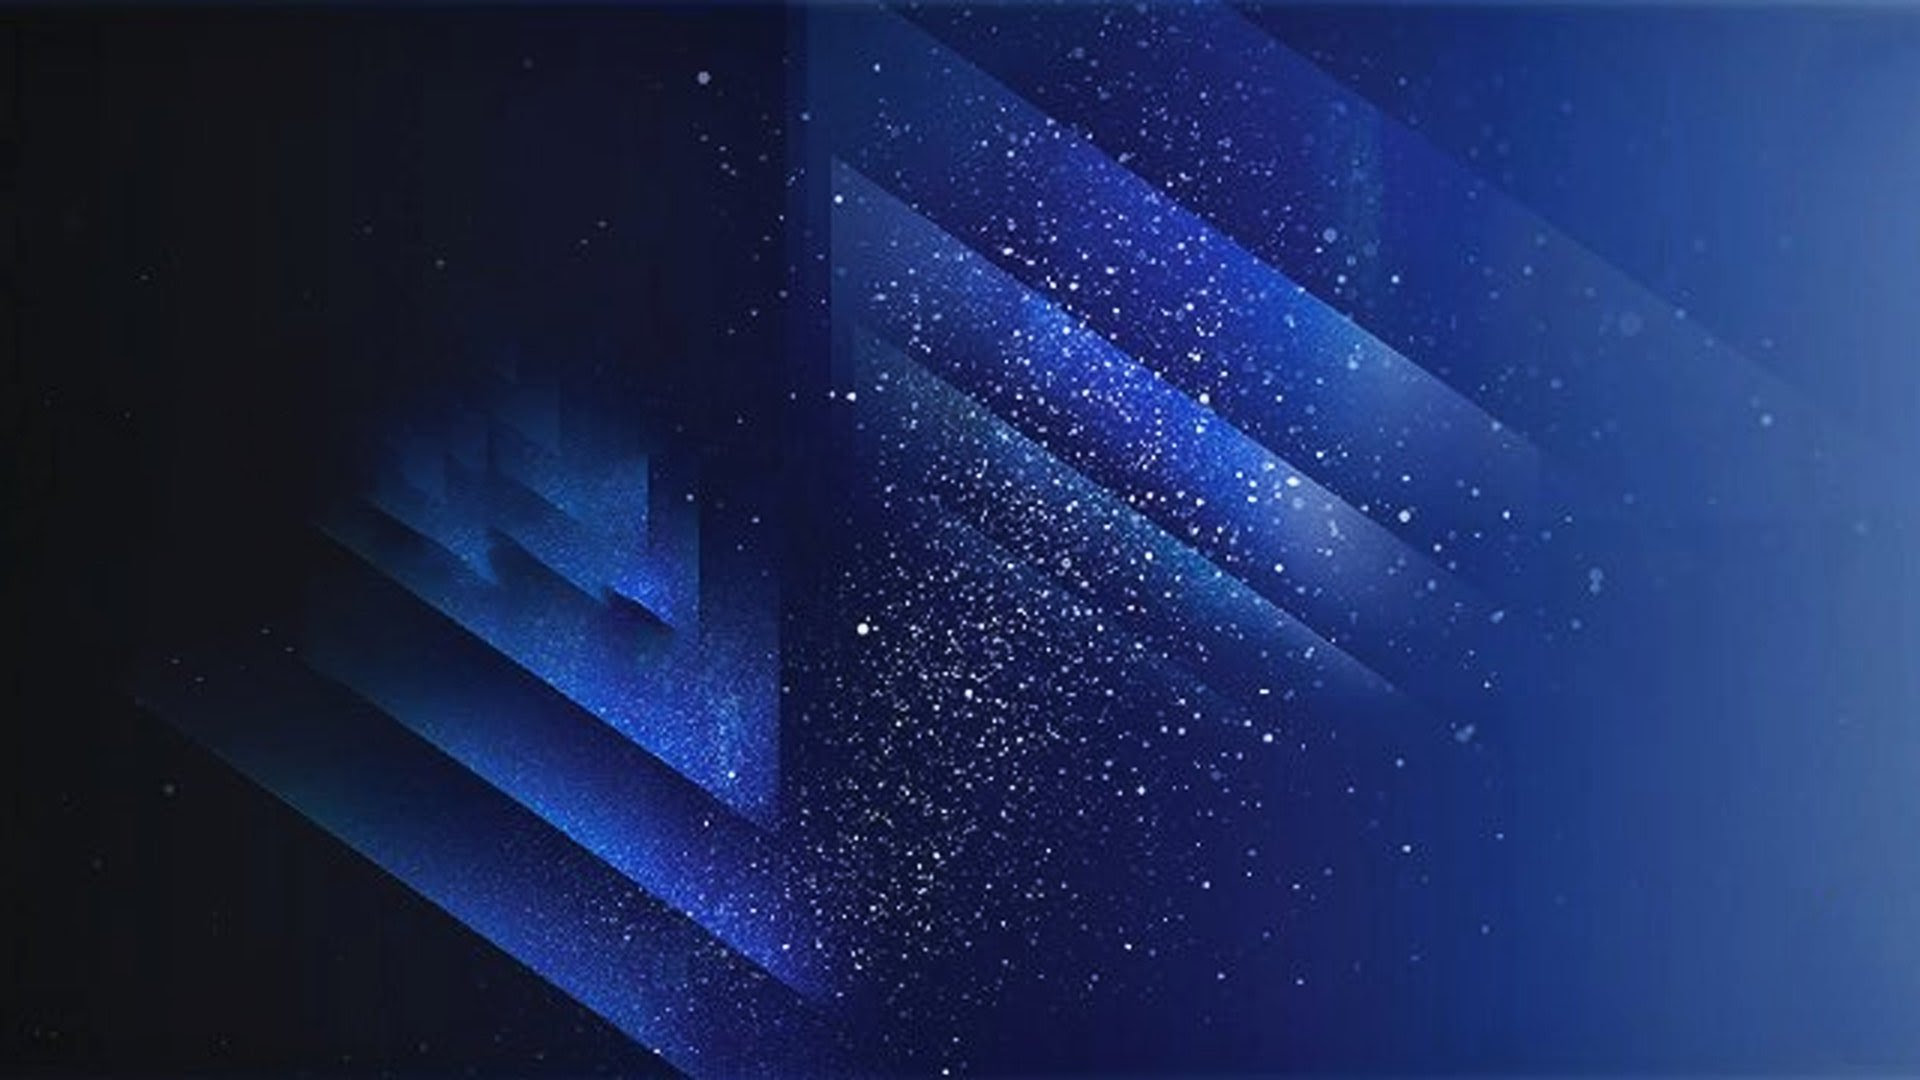 S8 Wallpaper HD Wallpapers